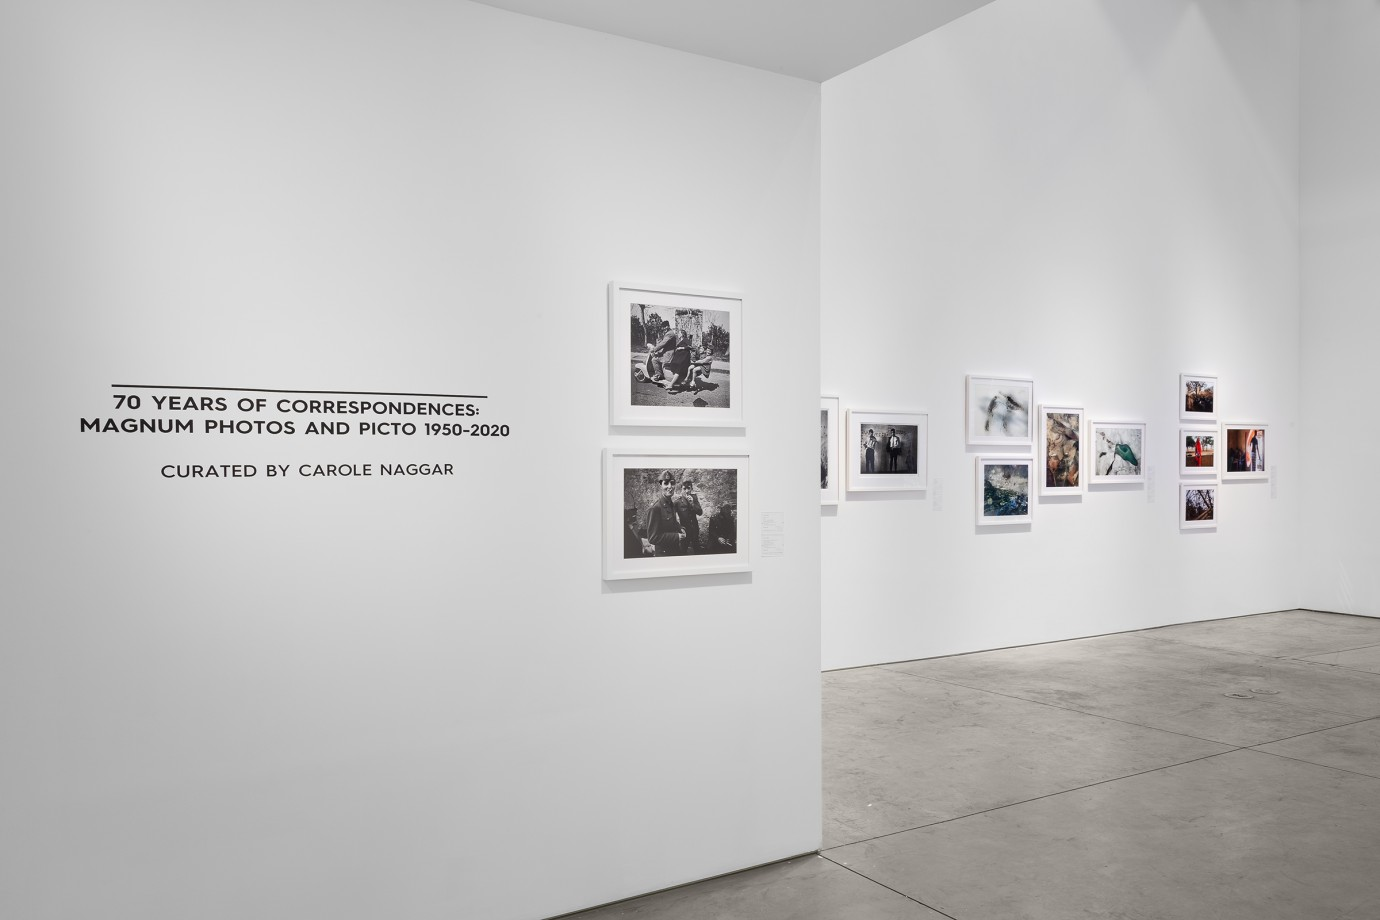 70 YEARS OF CORRESPONDENCES: MAGNUM PHOTOS AND PICTO 1950-2020